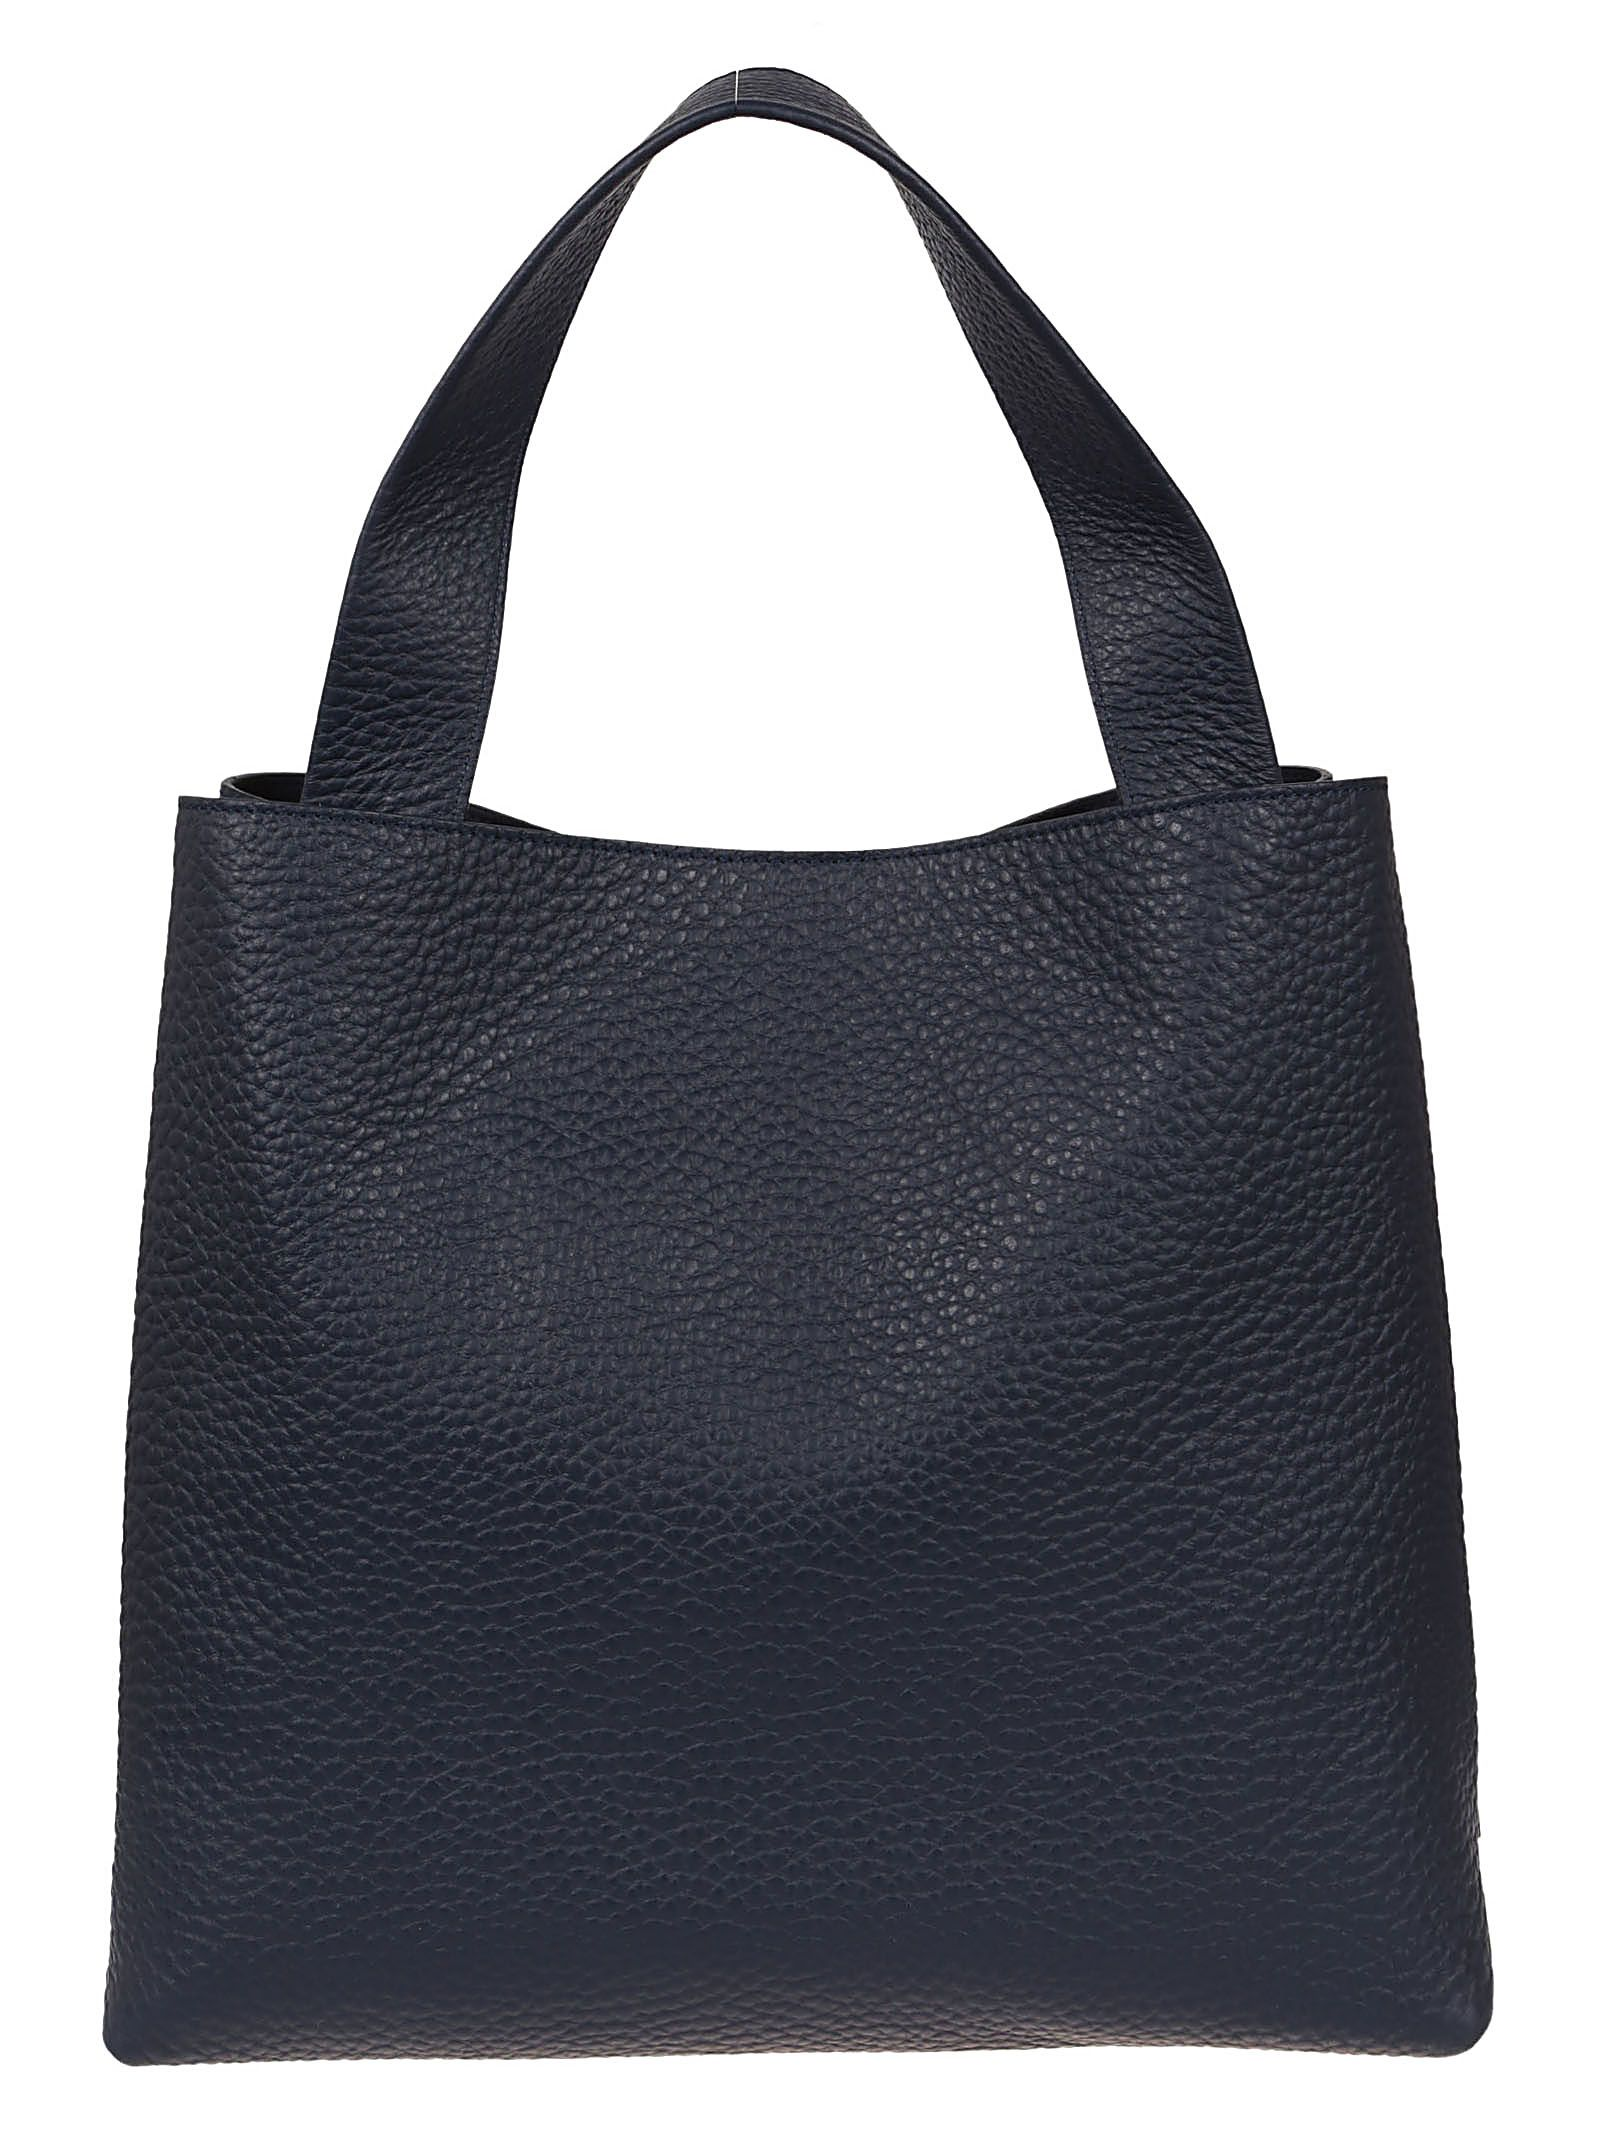 Tote Bag, Blue, Leather, 2017, one size Orciani